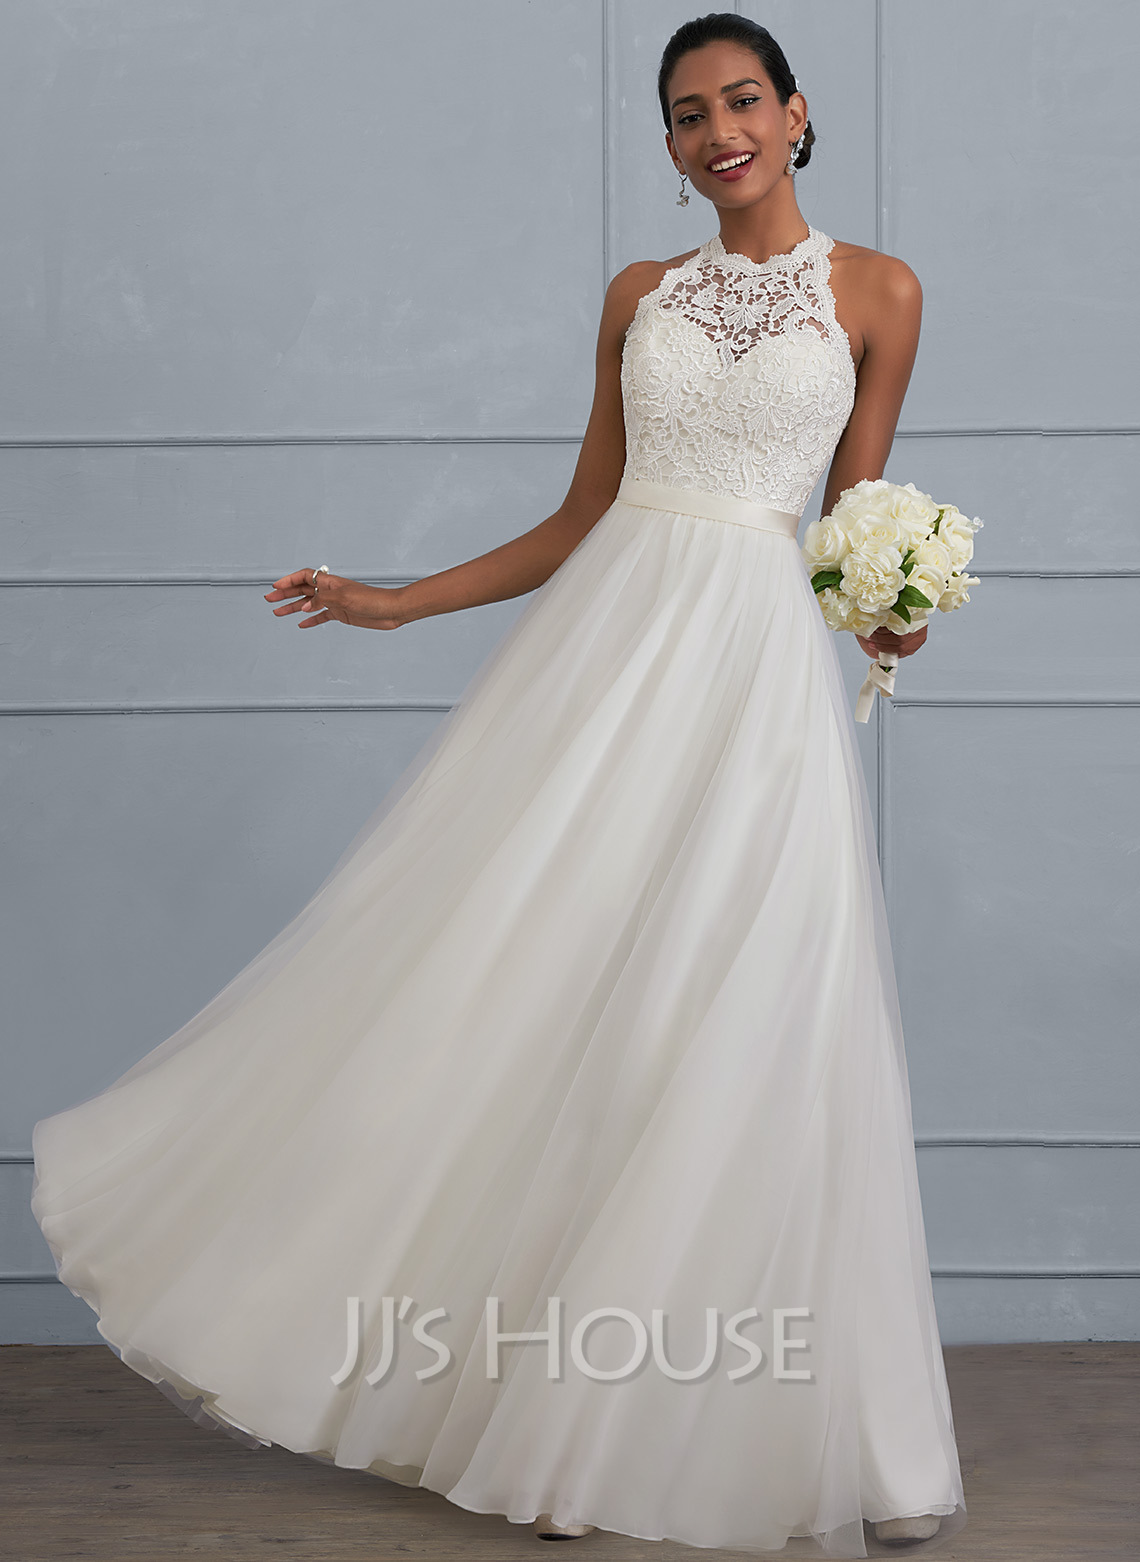 A lineprincess wedding dresses affordable under 100 jjshouse a lineprincess scoop neck floor length tulle wedding dress junglespirit Choice Image